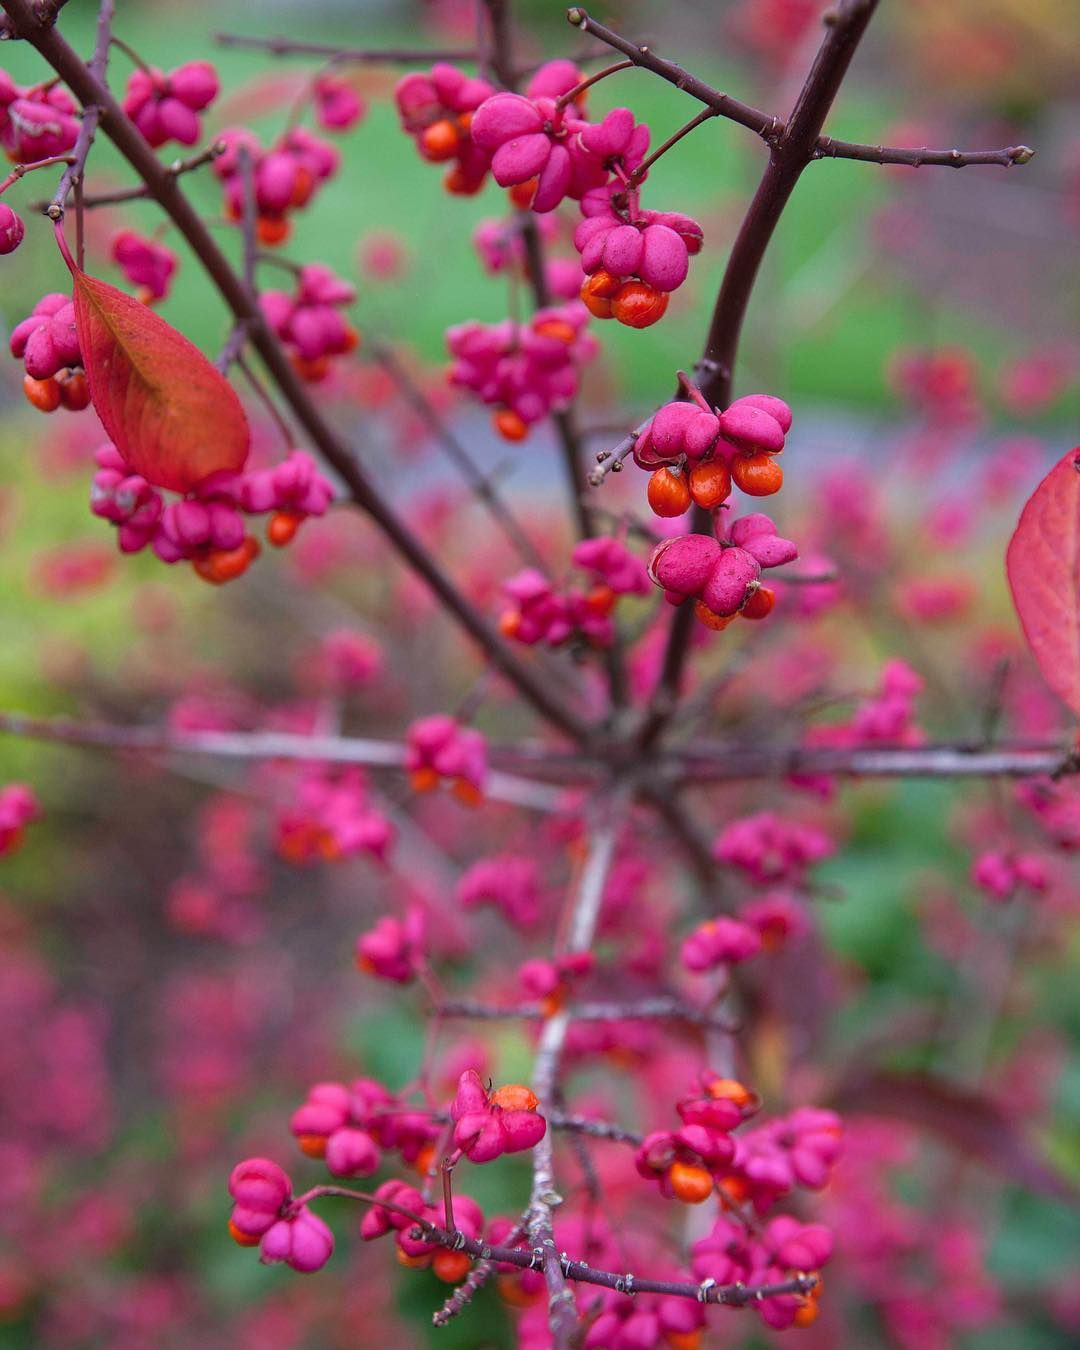 Pops Of Pink And Orange Light Up The Spindle Tree Euonymus Europaeus